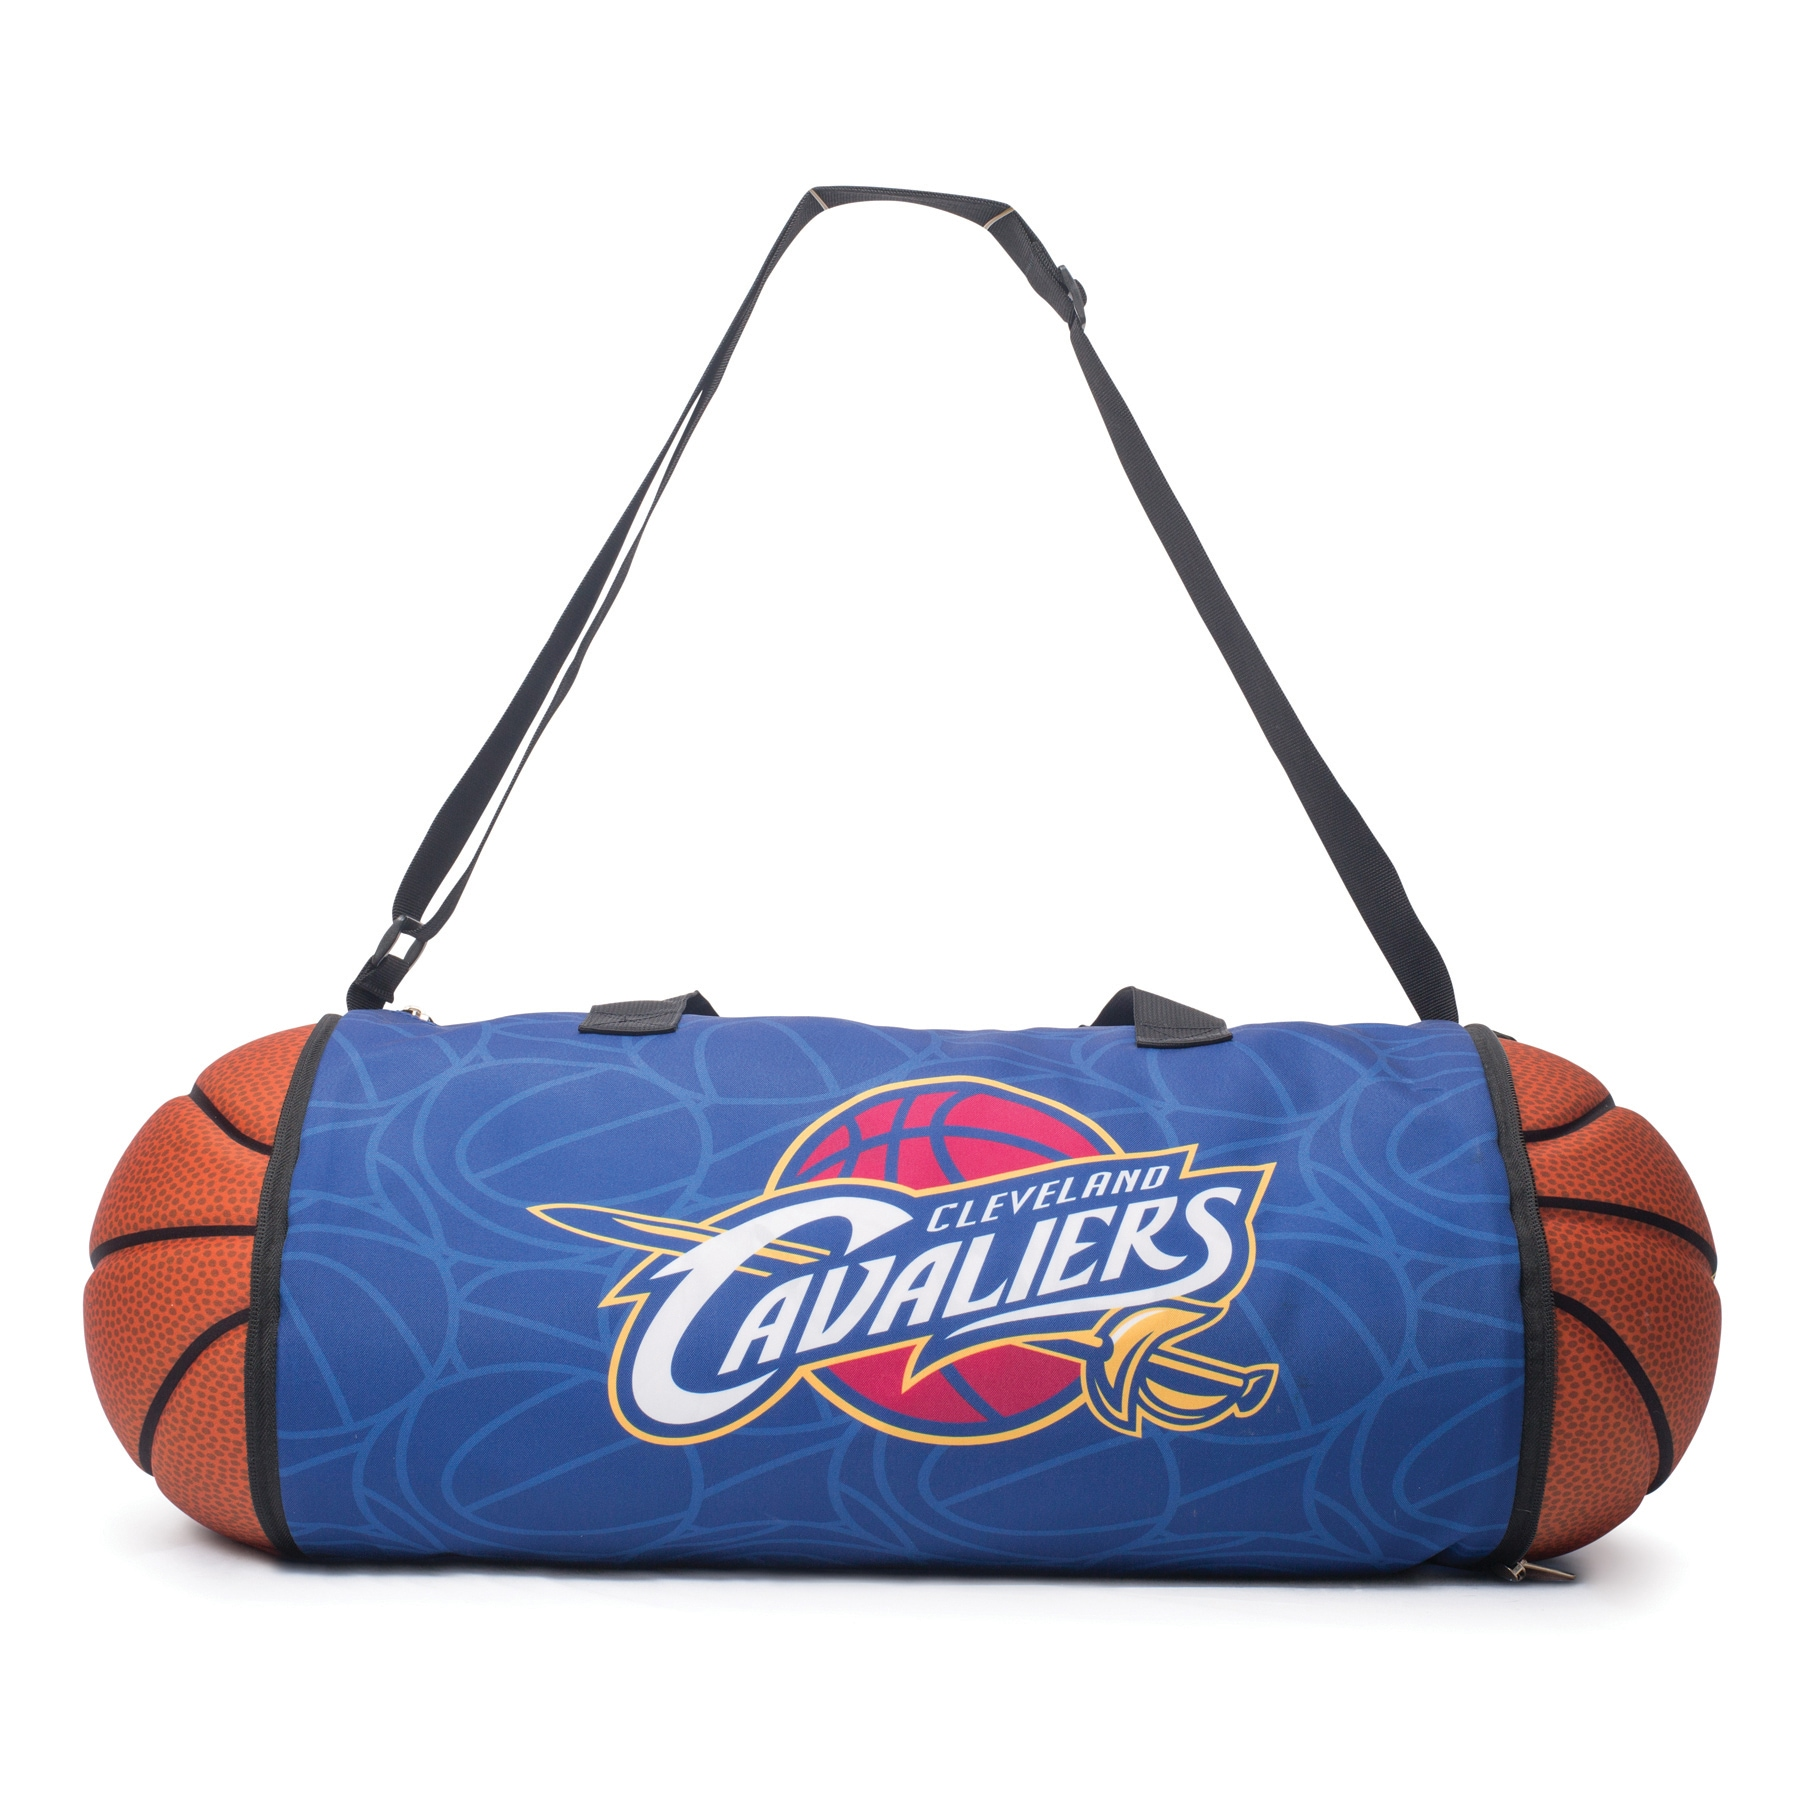 Cleveland Cavaliers Basketball to Duffle Bag